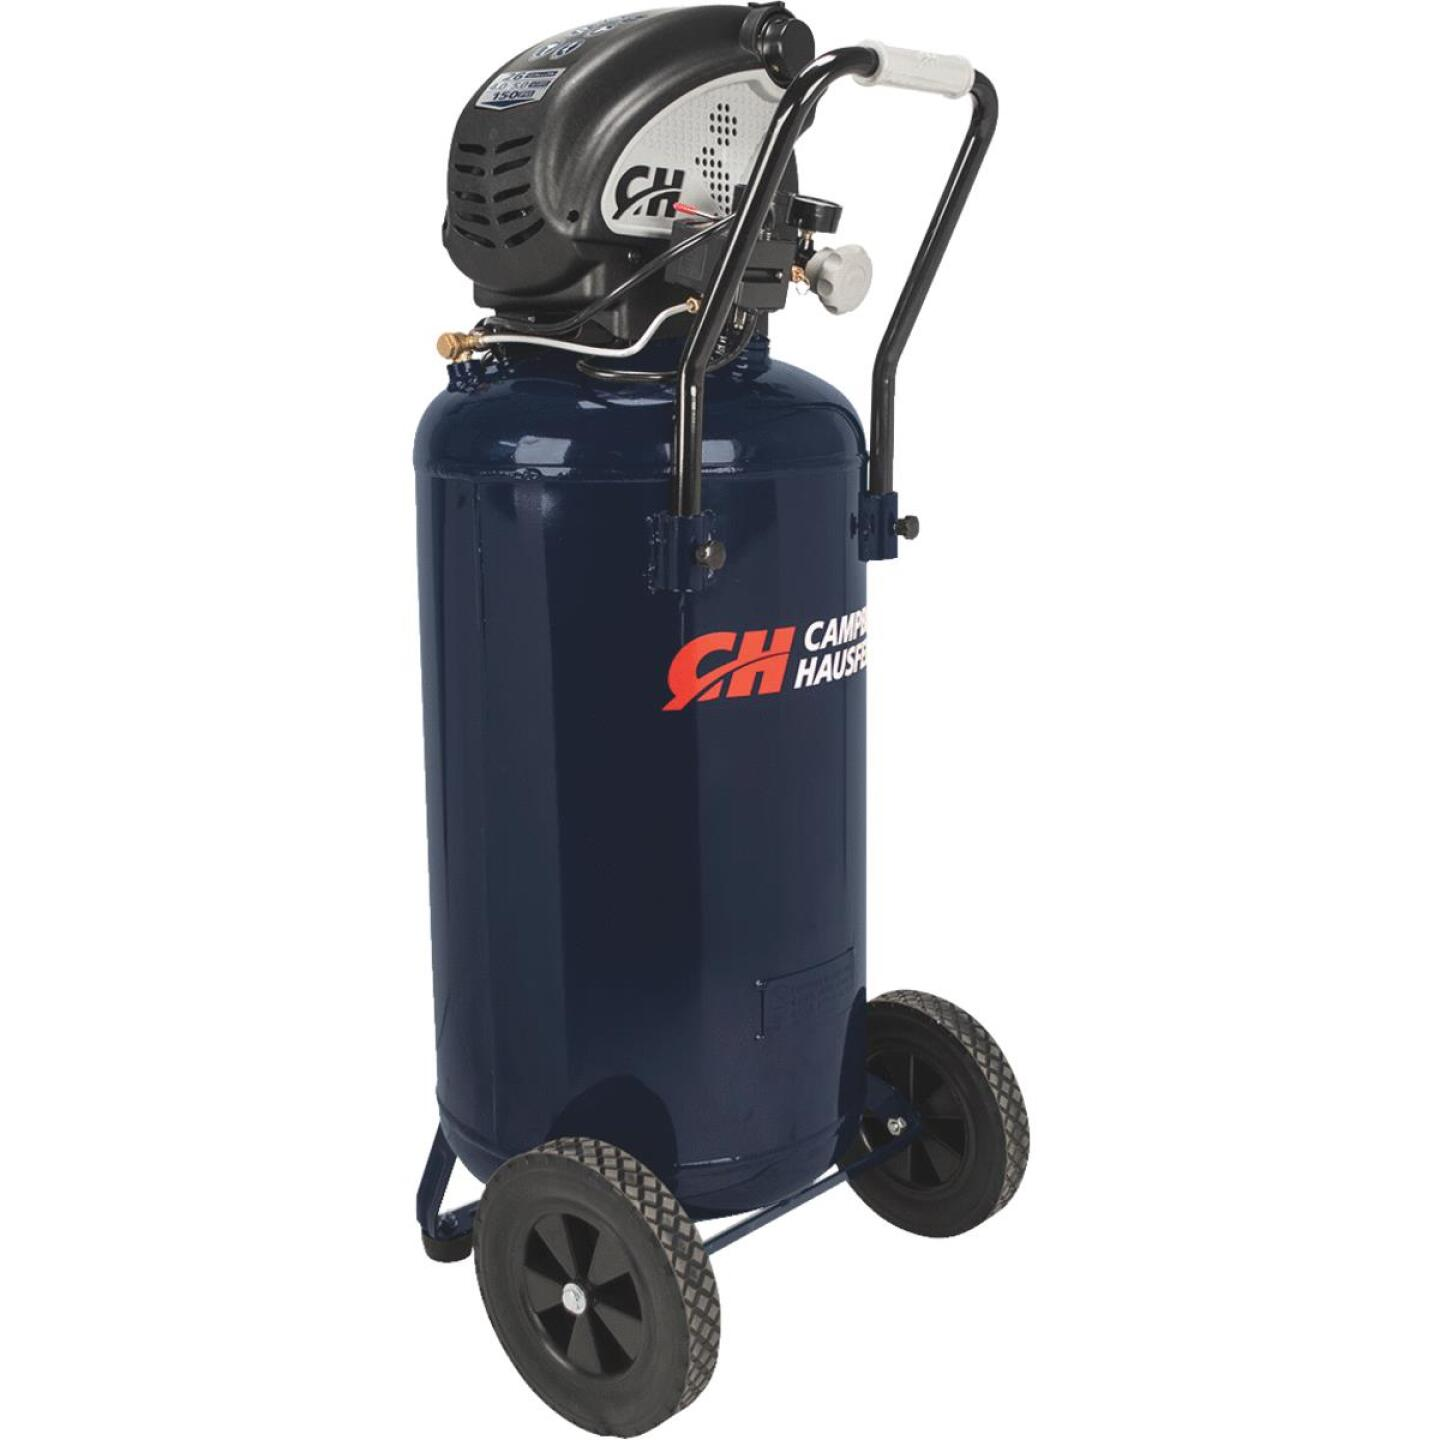 Campbell Hausfeld 26 Gal. Portable 150 psi Air Compressor Image 1